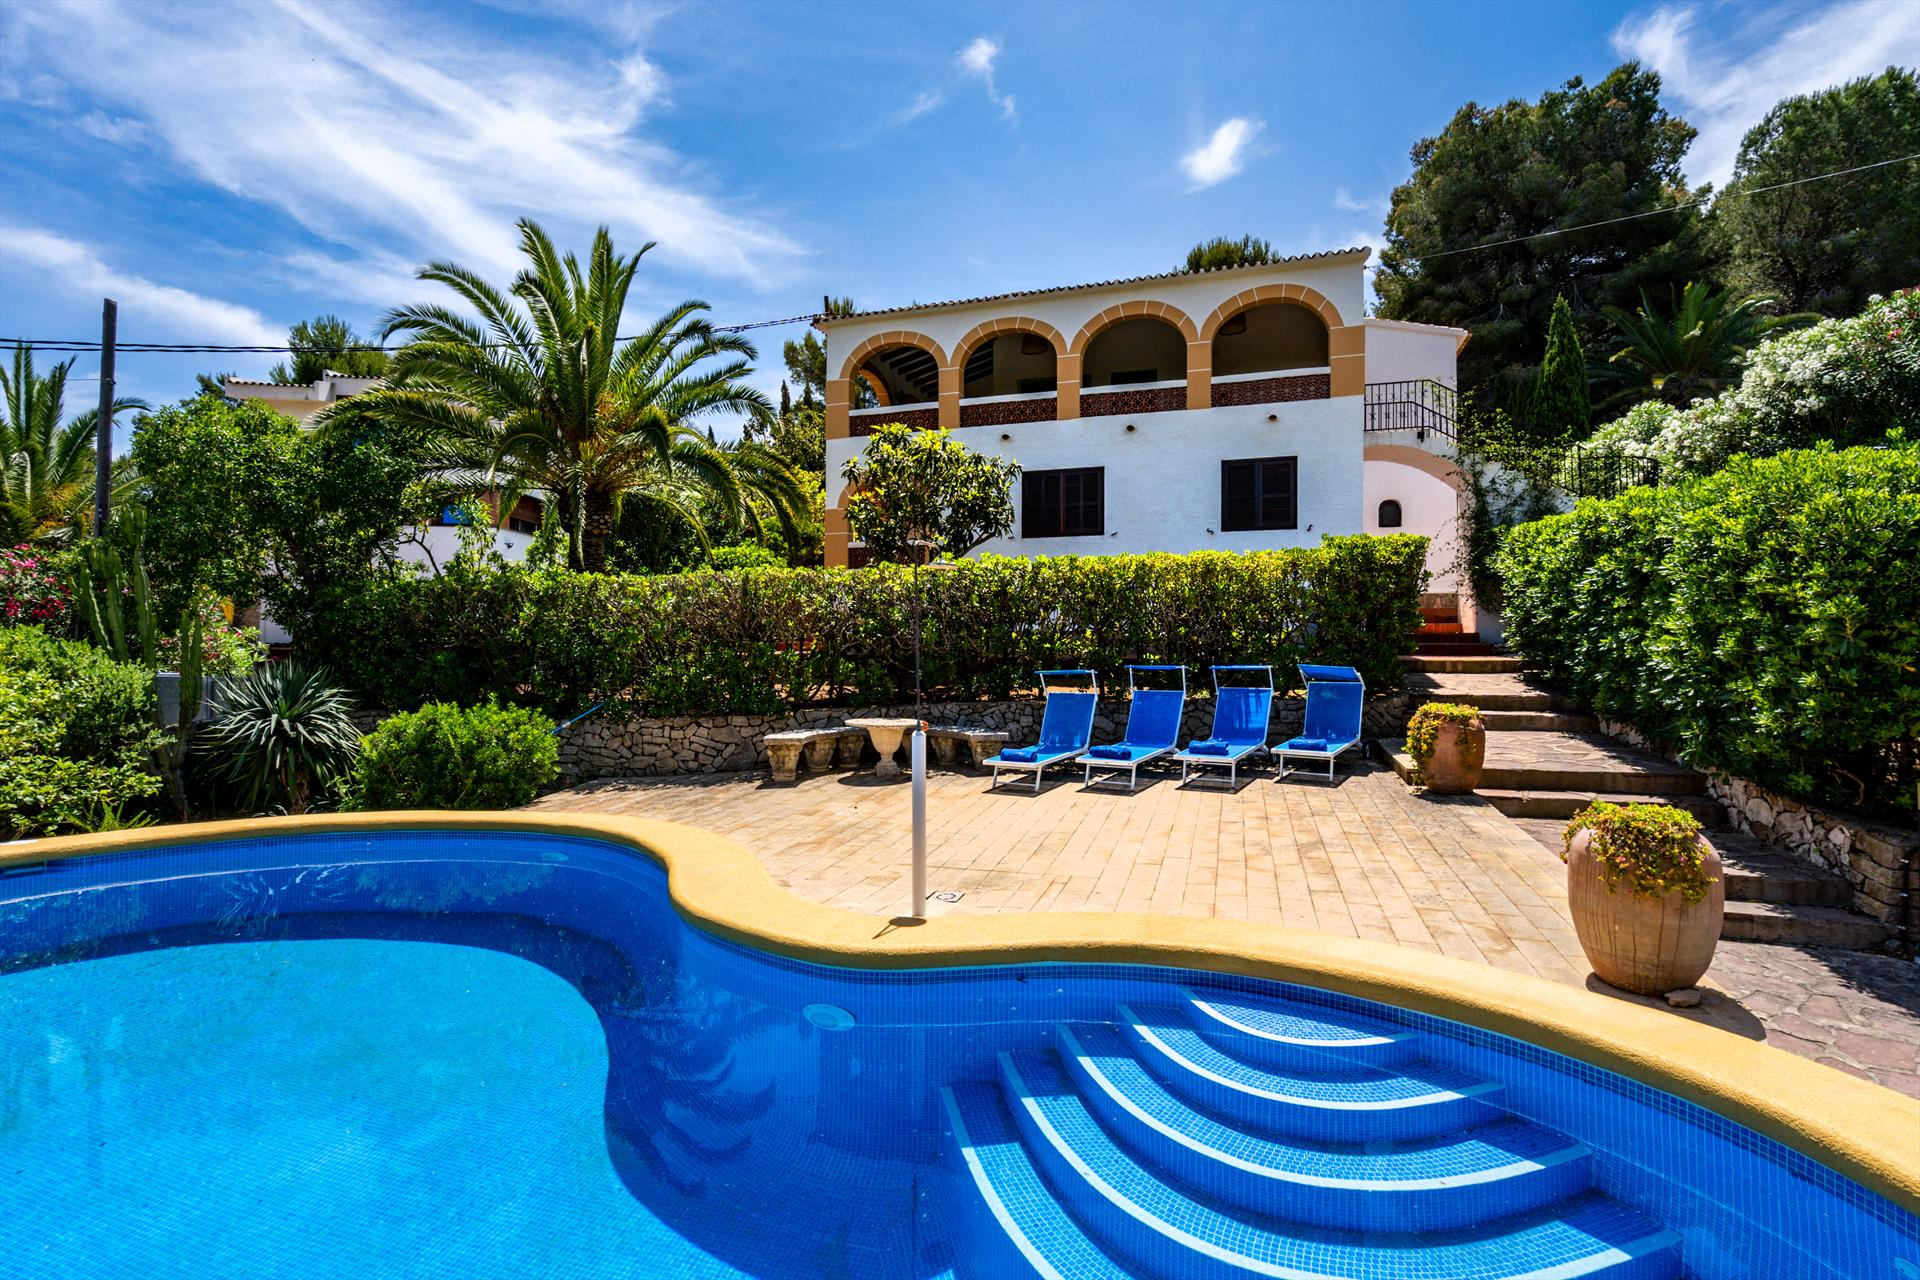 Villa Marta Denia,Rustic and classic villa in Denia, on the Costa Blanca, Spain with private pool for 6-7 persons. The house is situated in.....